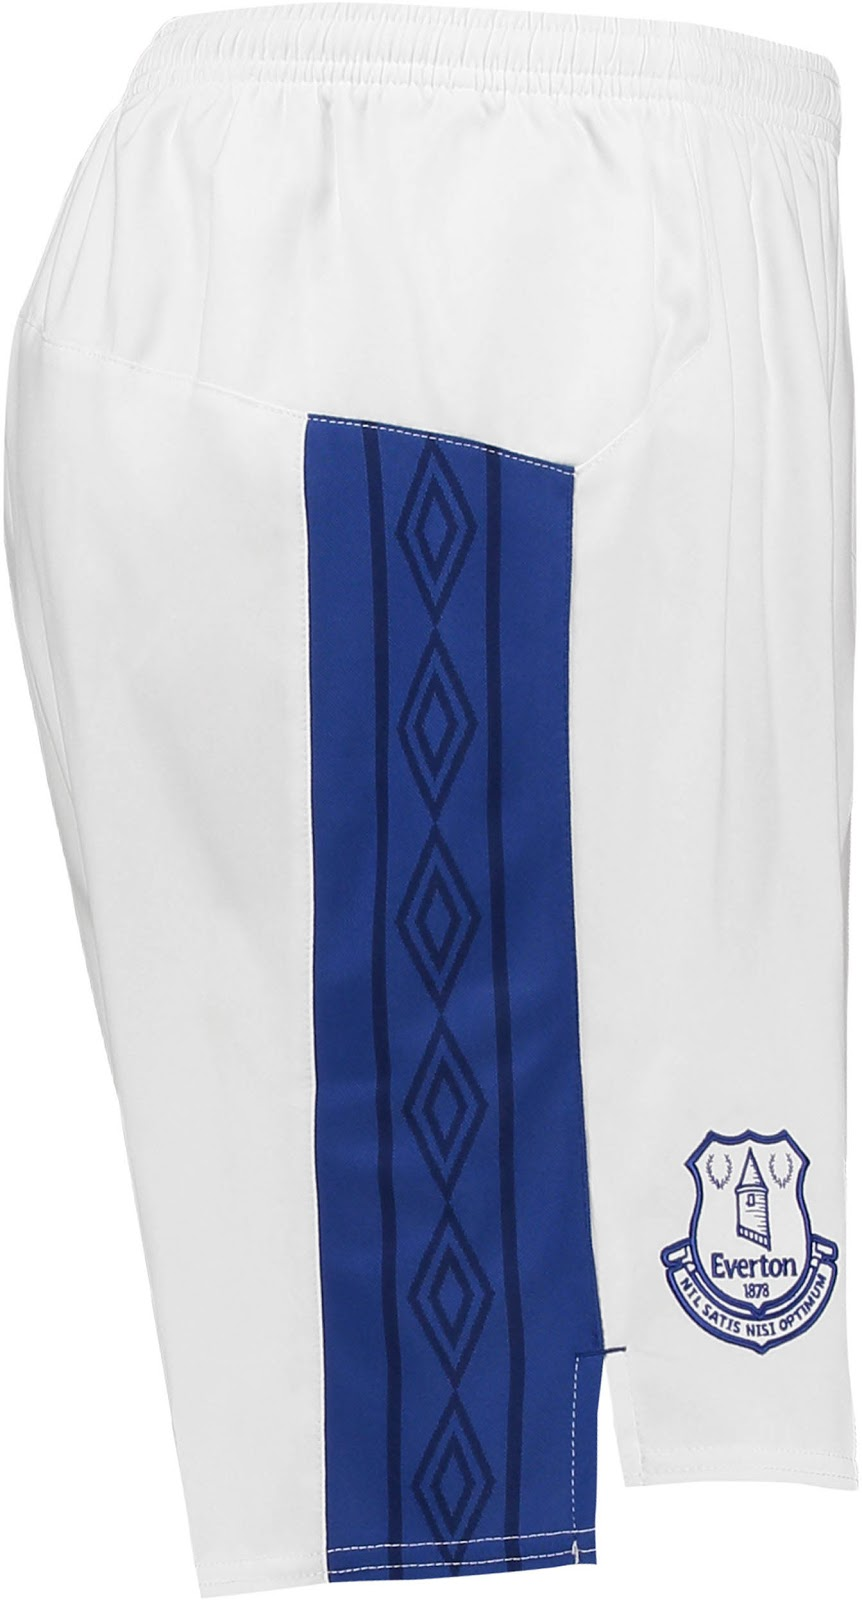 everton-17-18-home-kit-shorts-side